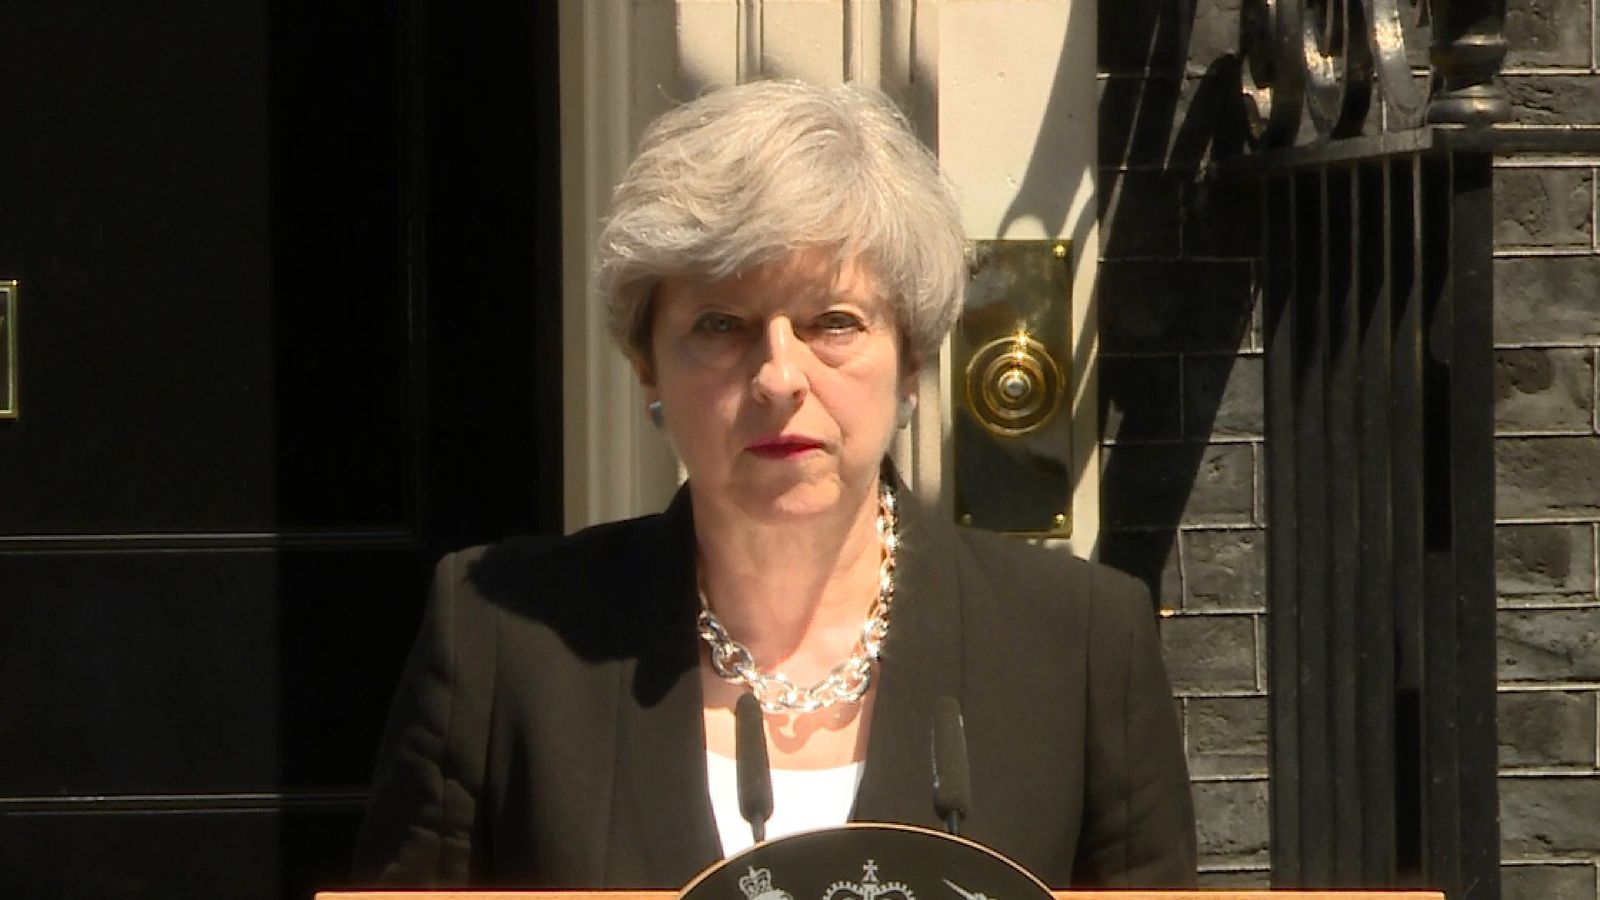 Theresa May delivers her response to the Finsbury Park attack